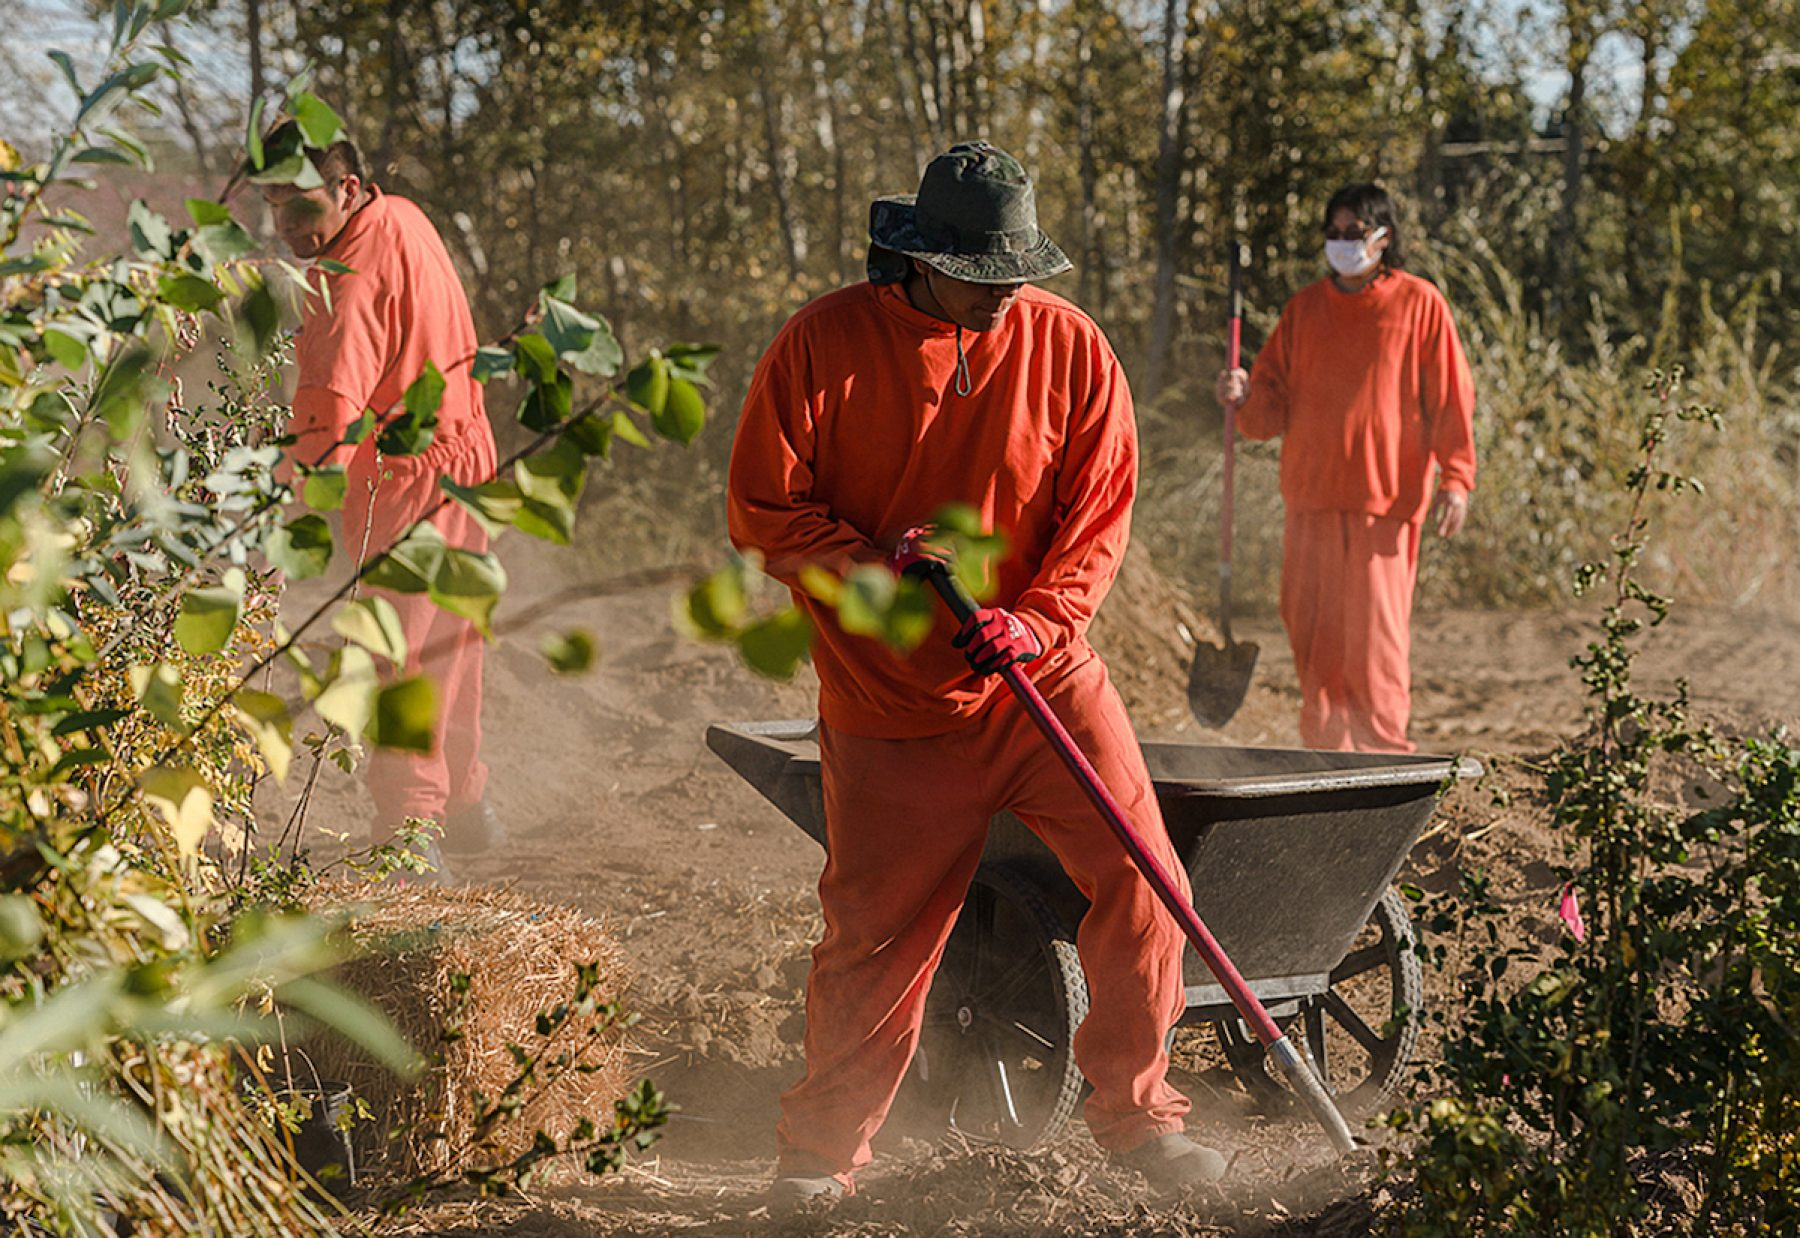 Image for The 'healing forest' planted by indigenous US inmates